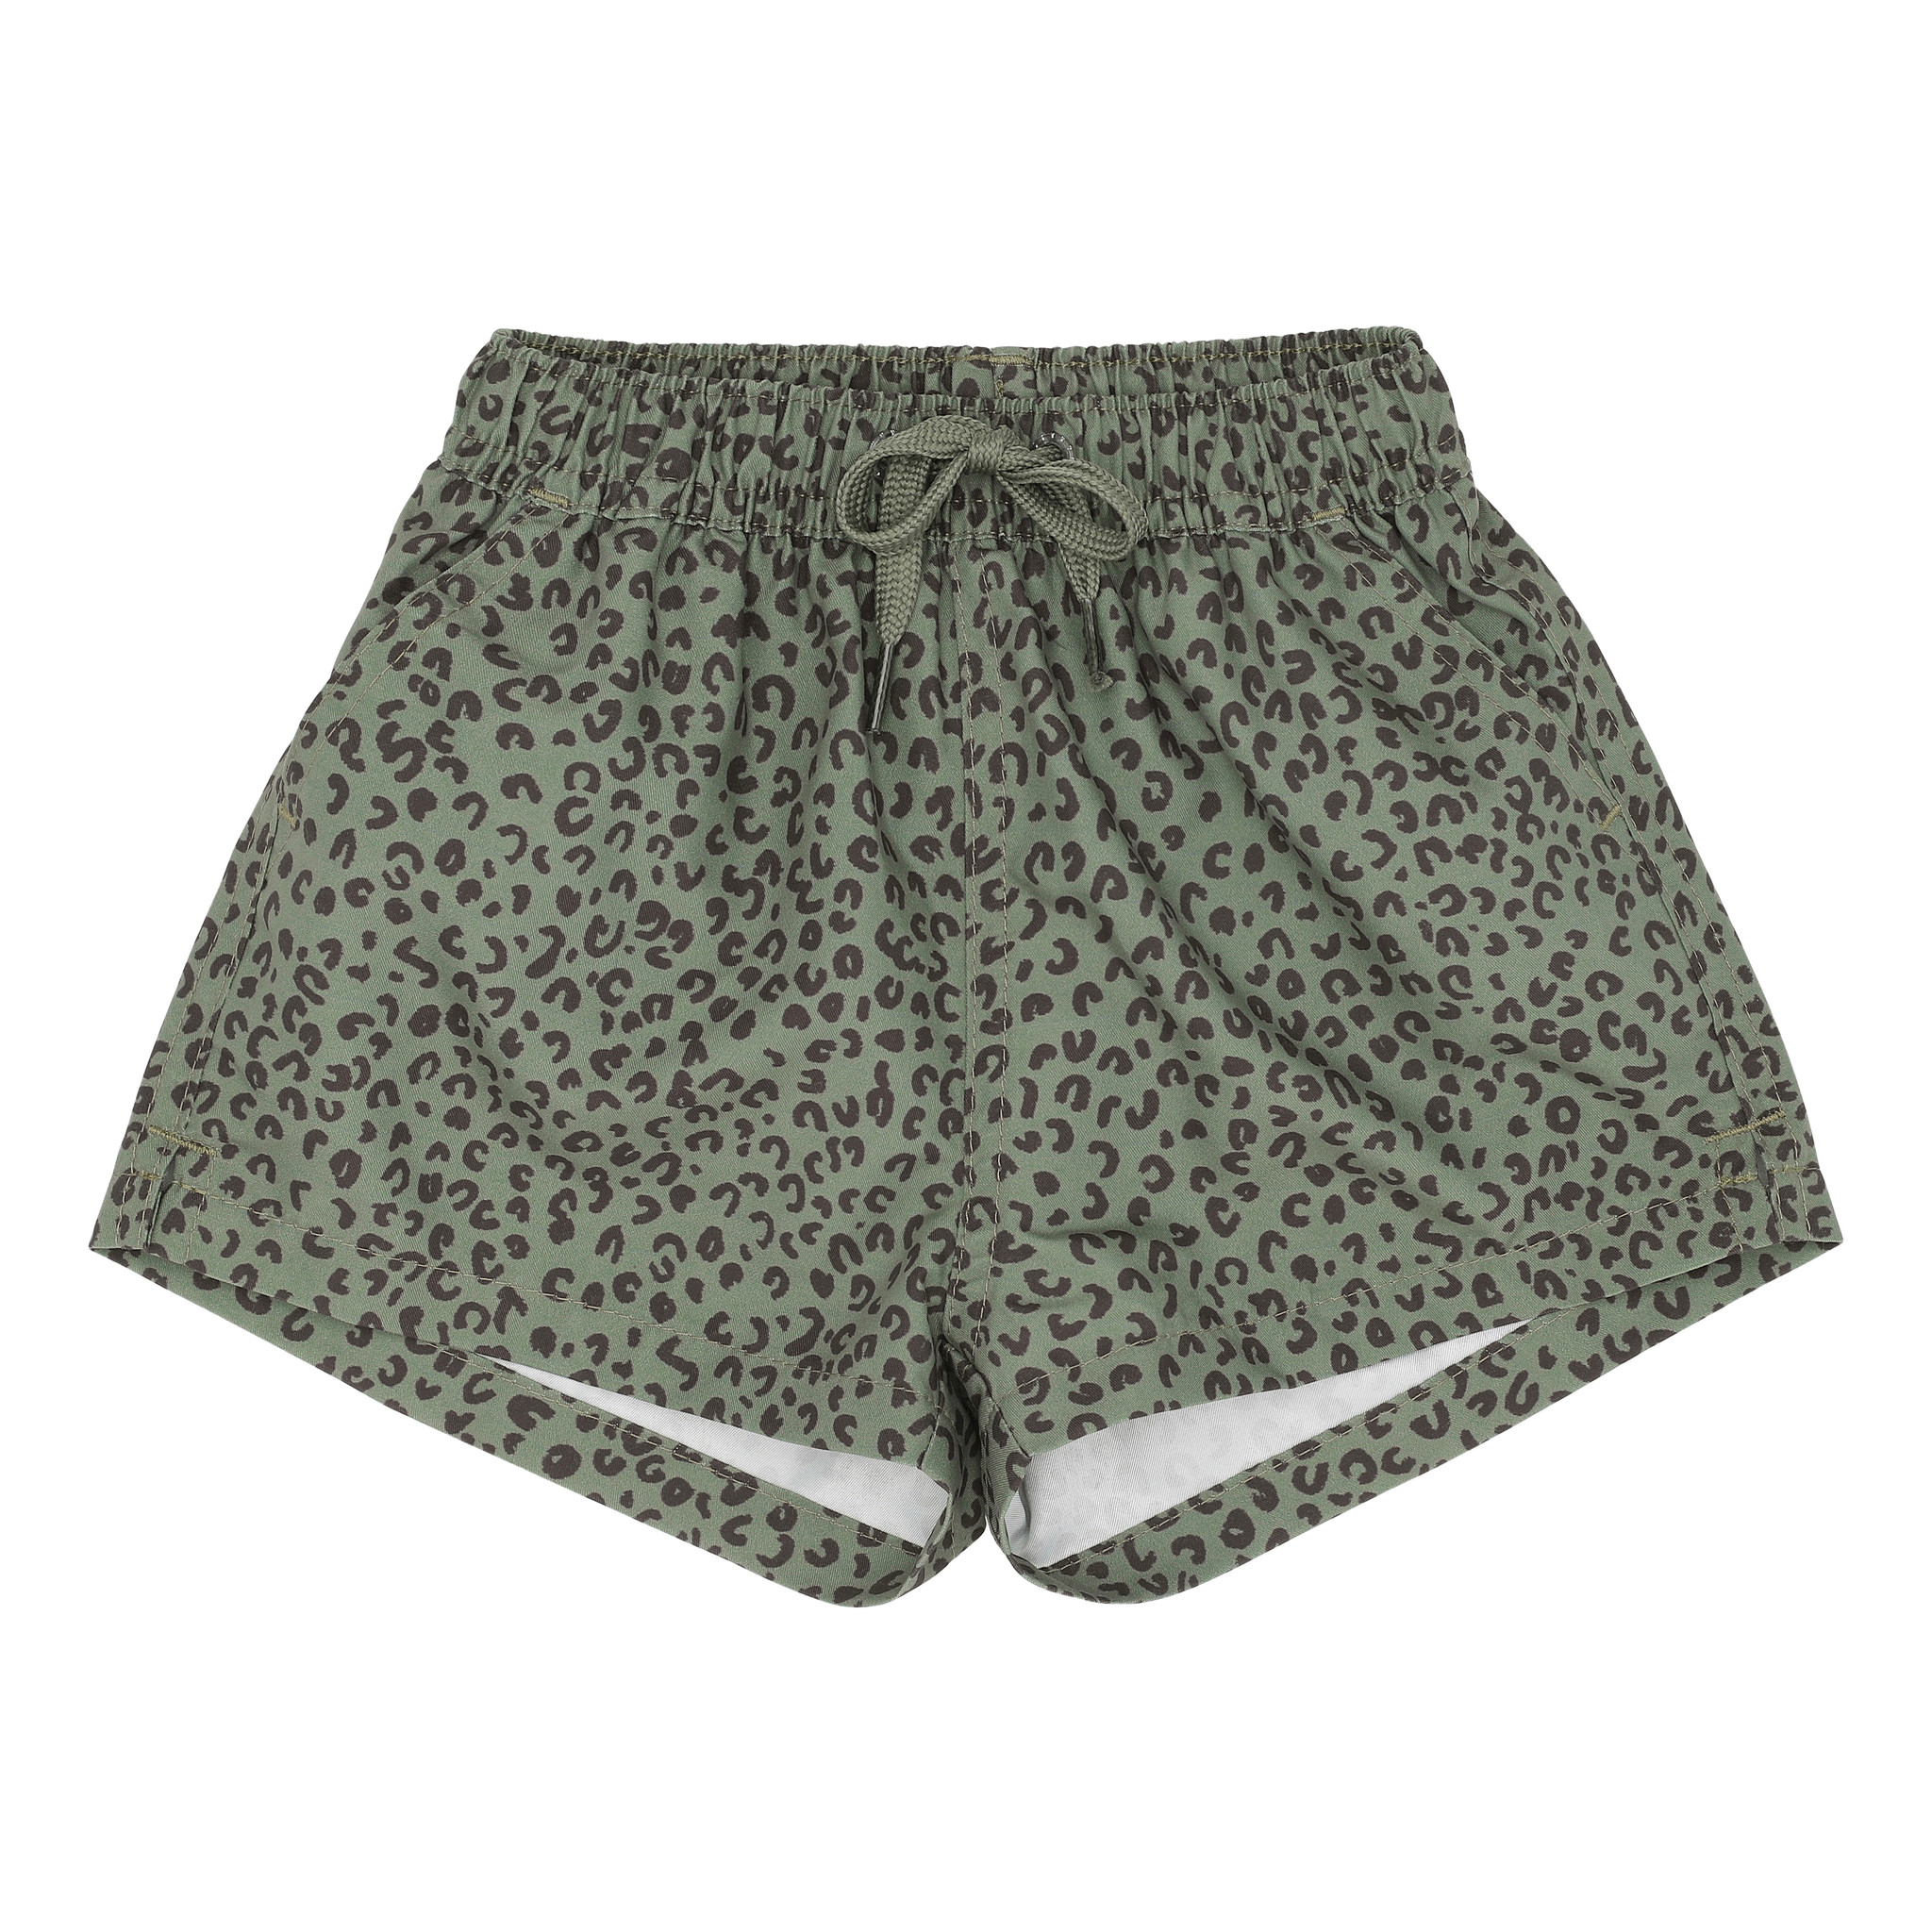 Dandy swimpants - Oil Green / AOP Leospot-1